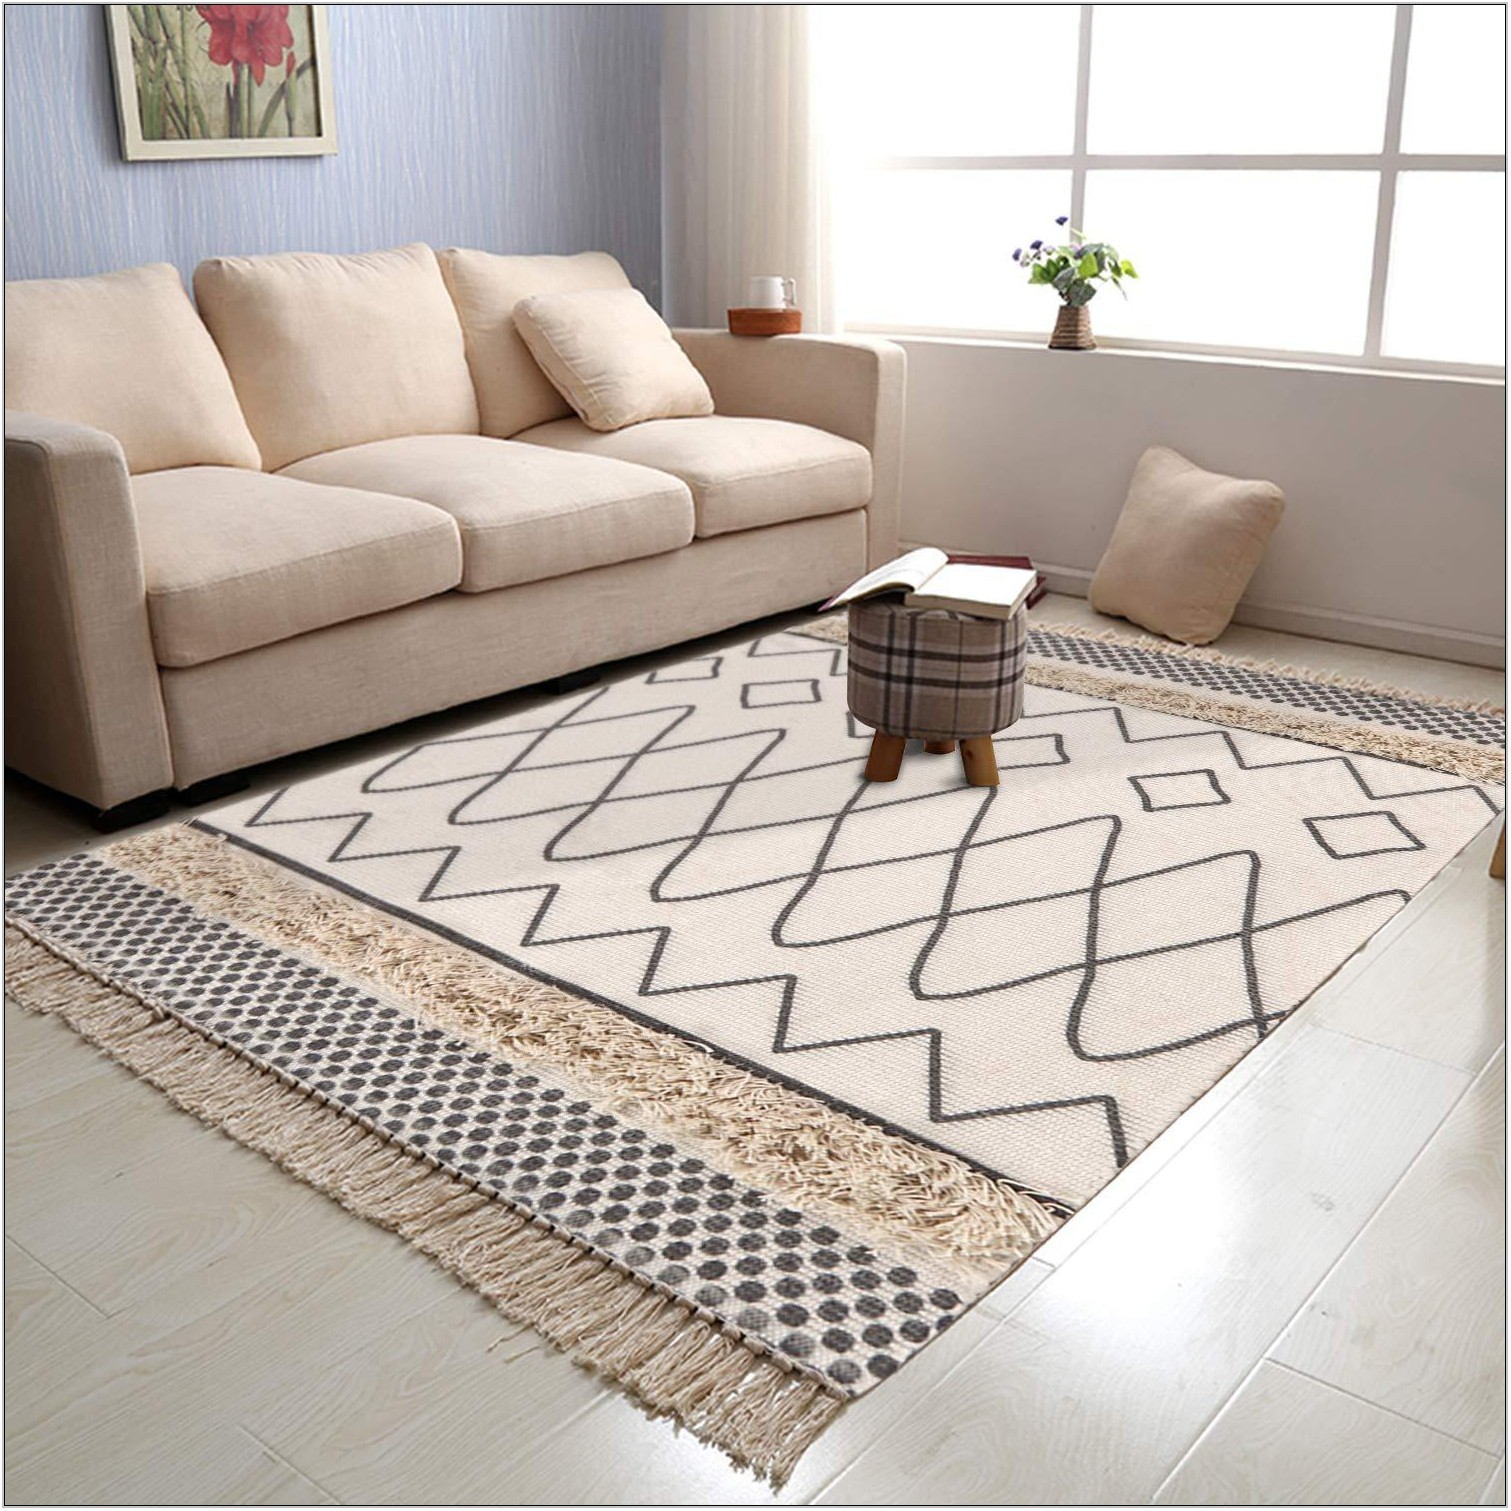 Stylish Rugs For Living Room